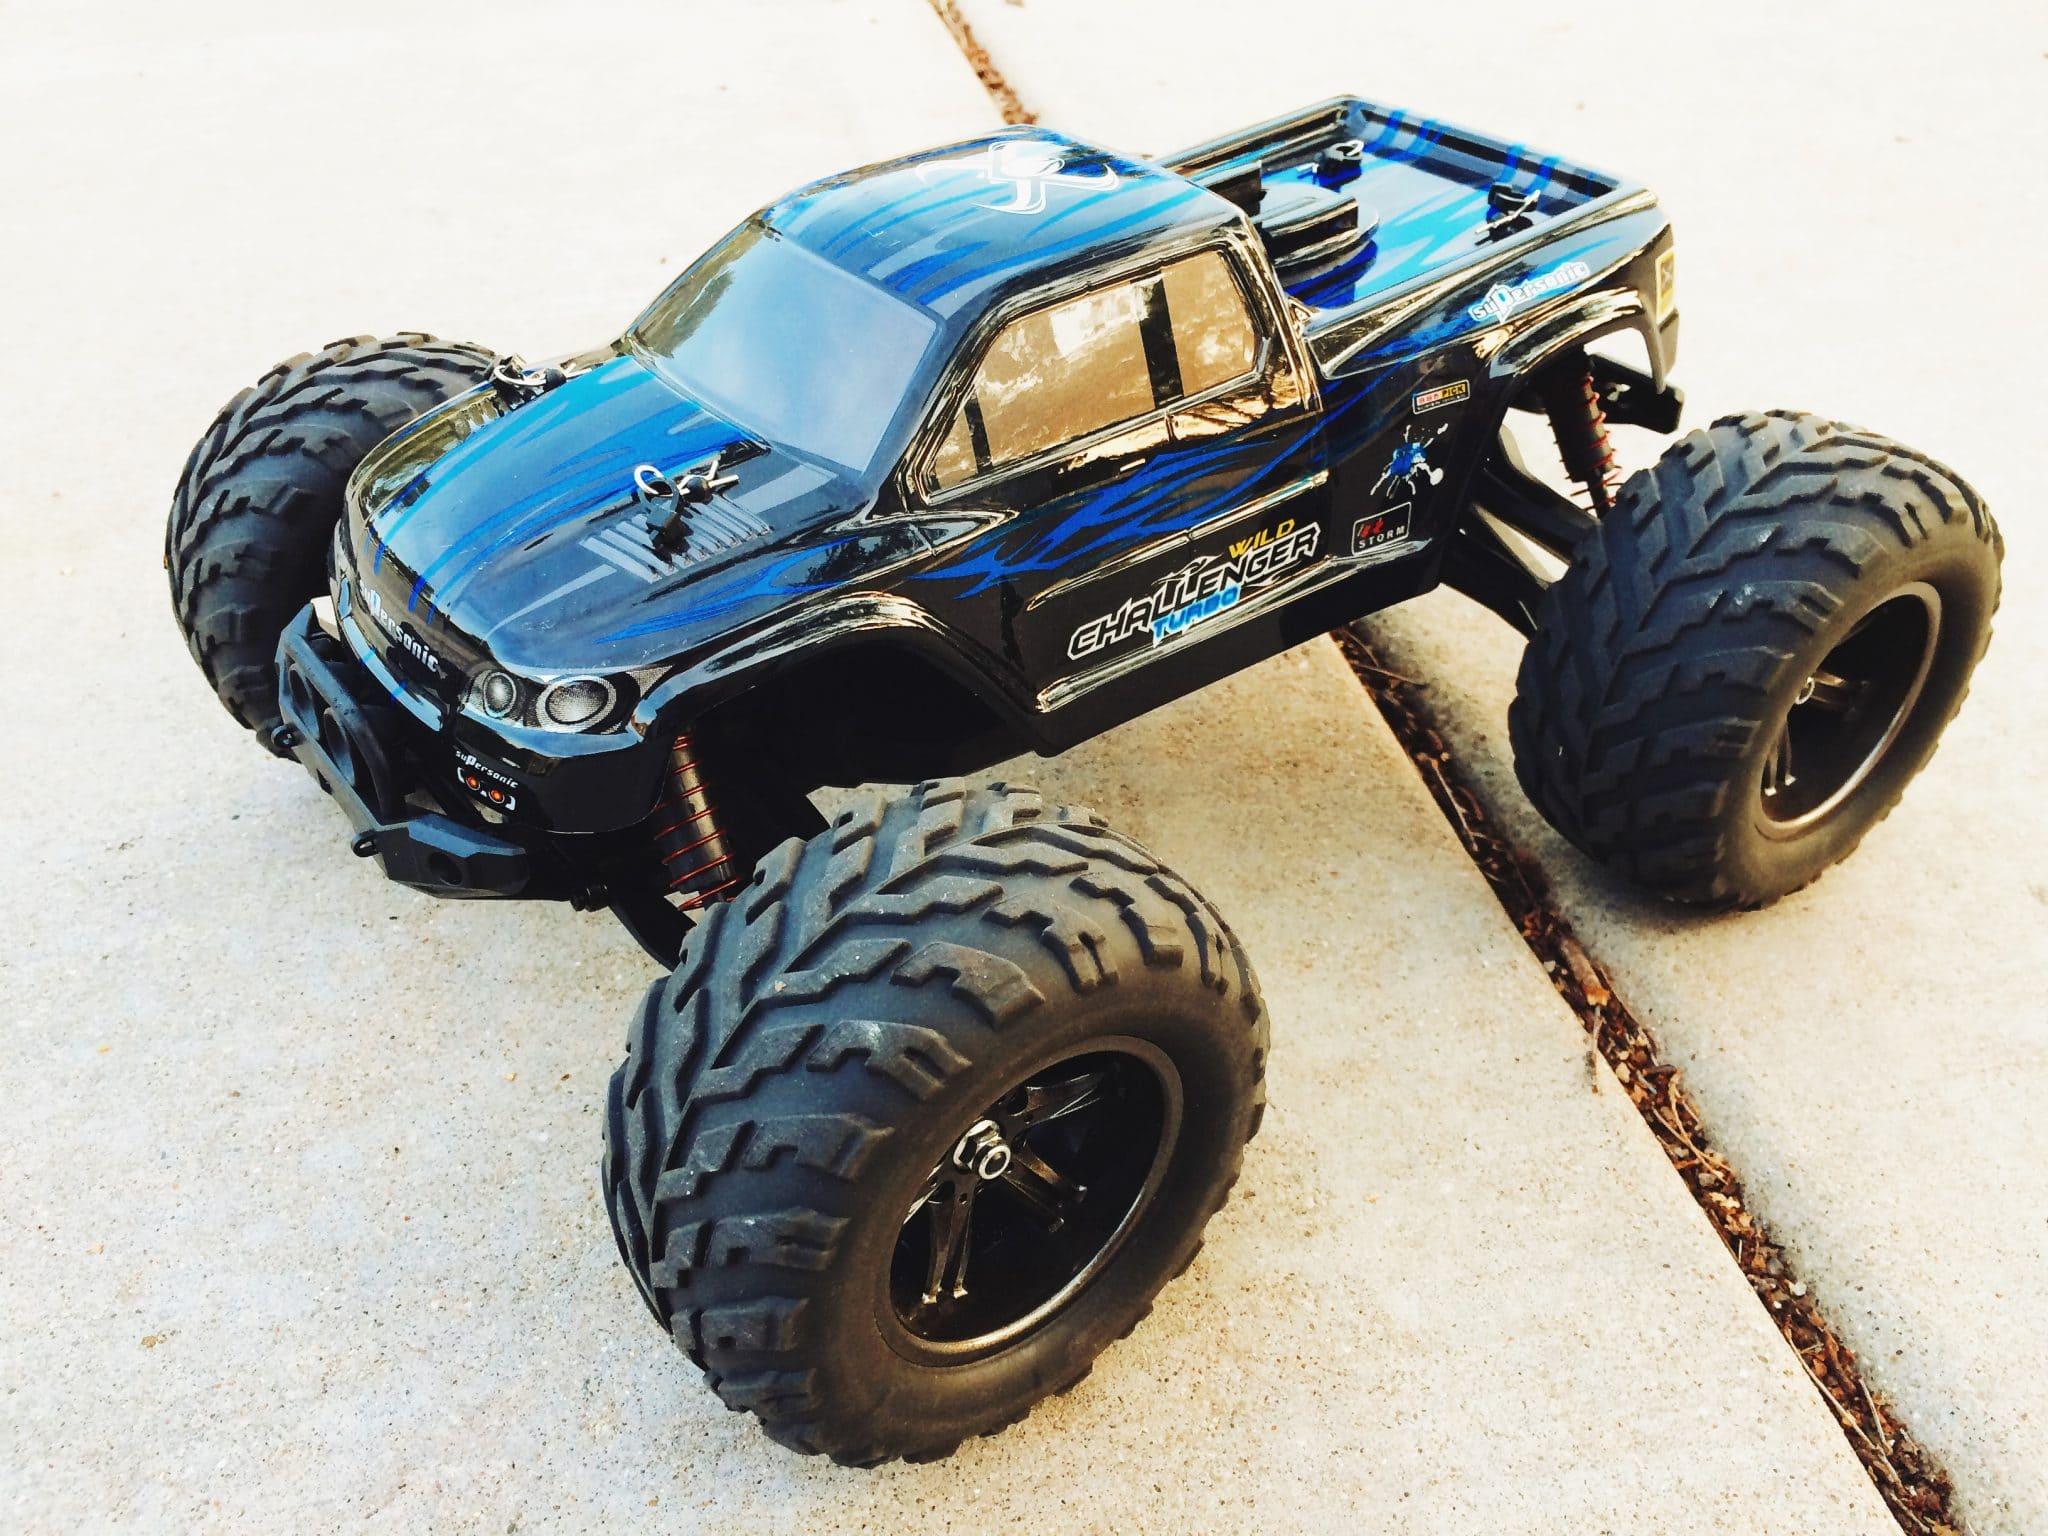 GP Toys Foxx S911 R/C Monster Truck – The Review